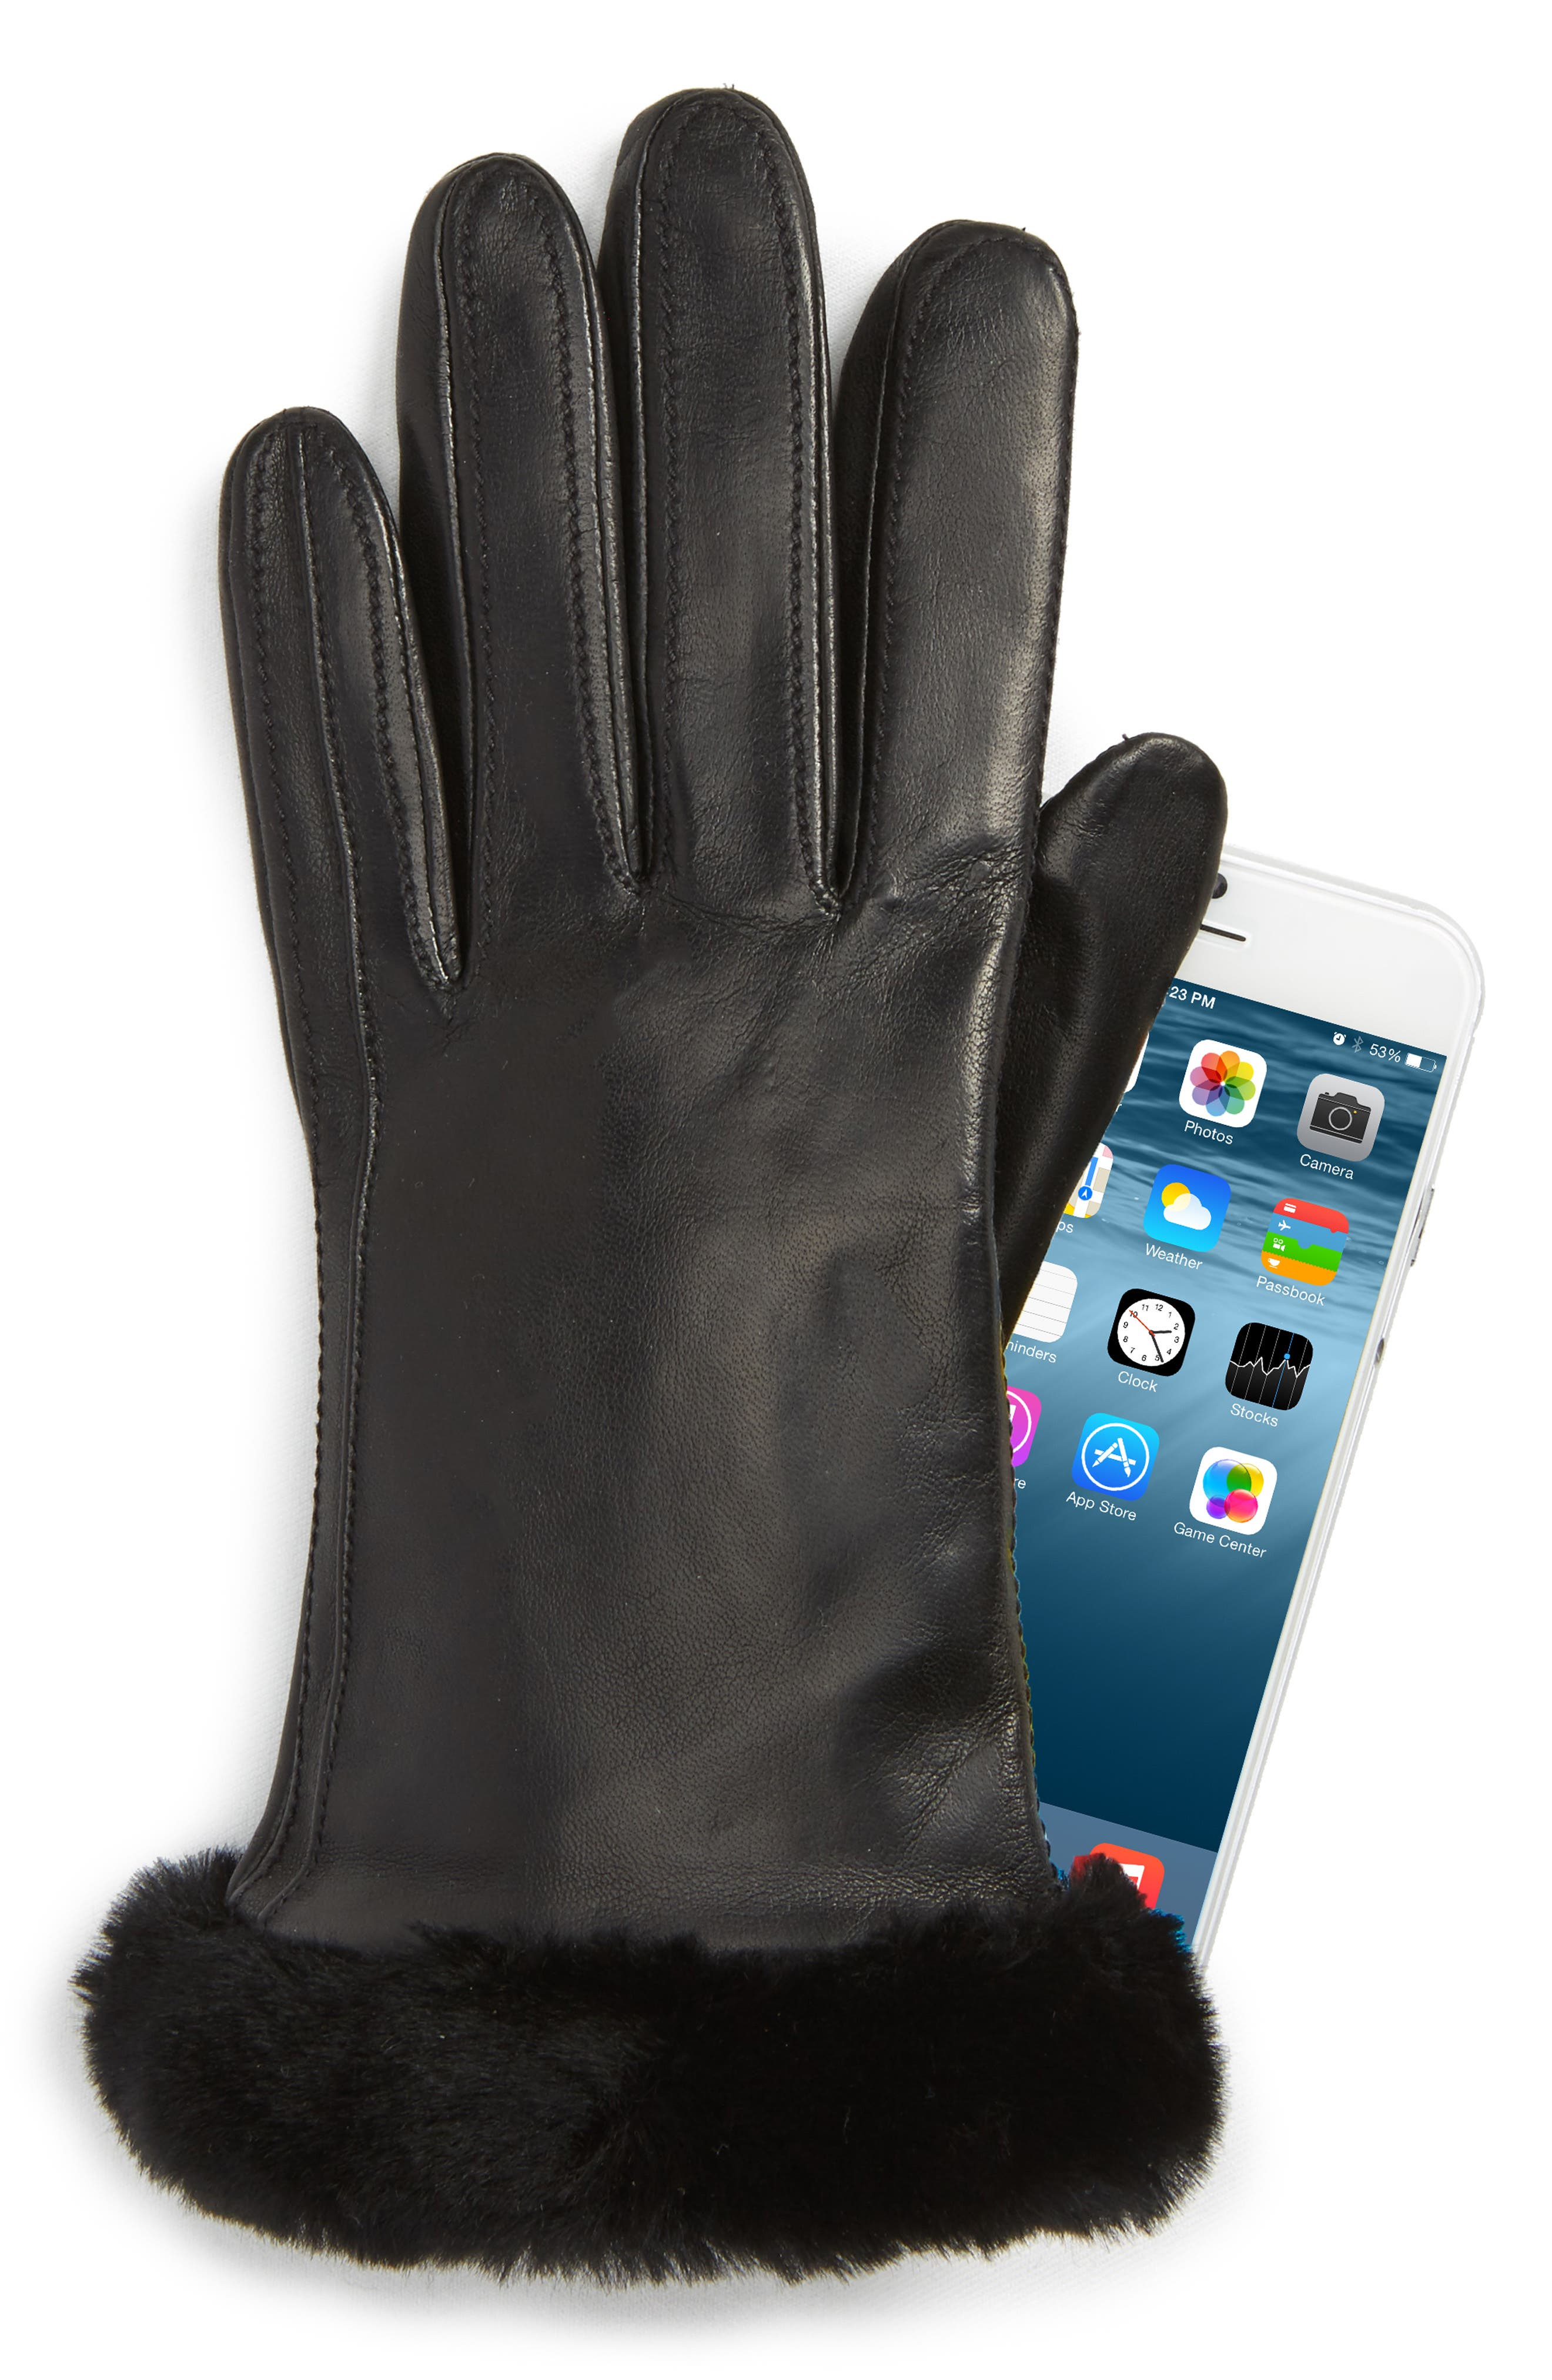 UGG<sup>®</sup> Classic Leather Tech Gloves with Genuine Shearling Trim,                             Alternate thumbnail 2, color,                             Black